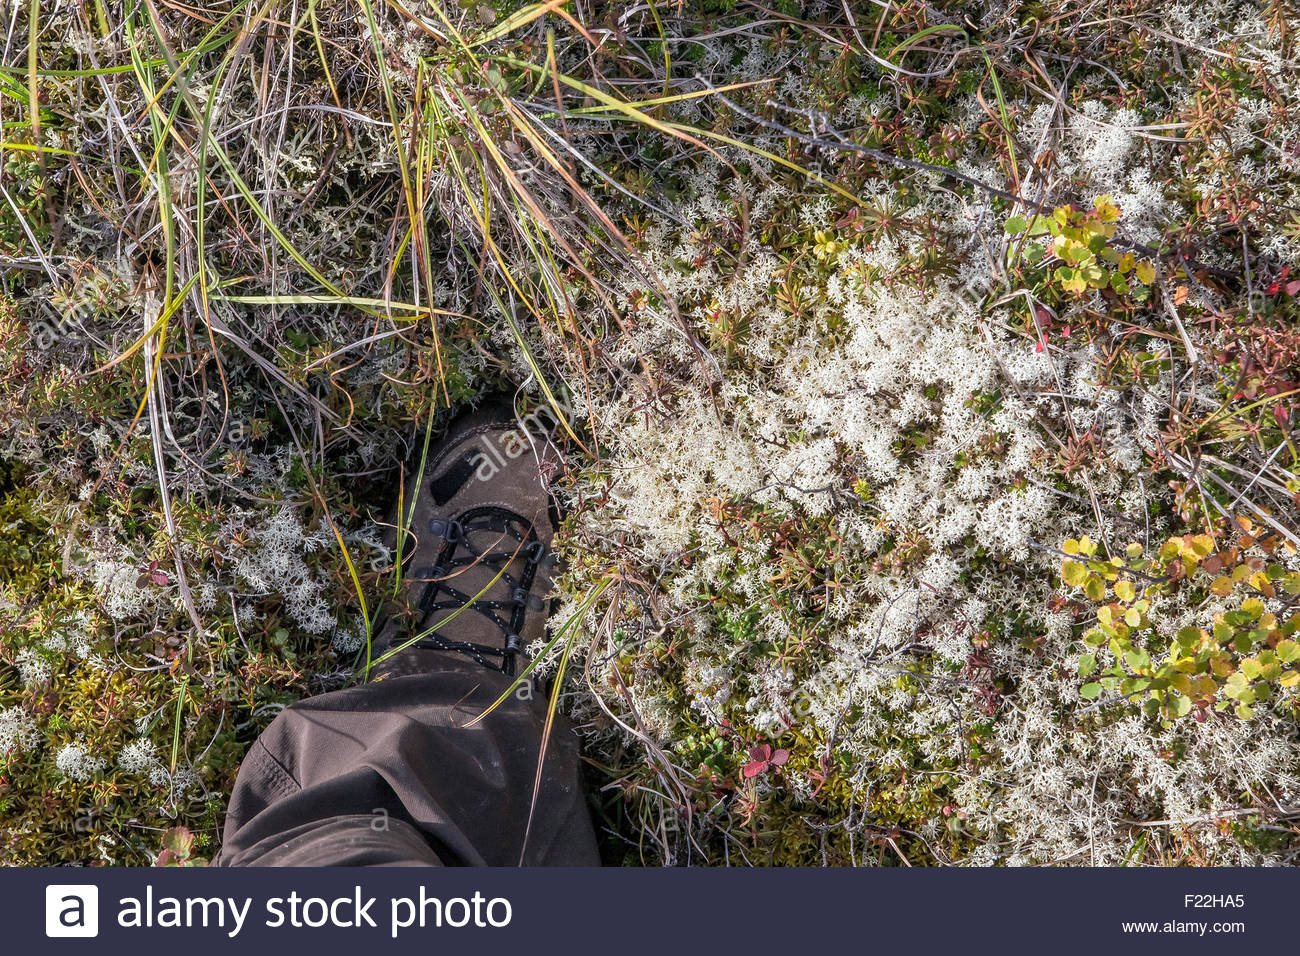 shoe-sinking-into-the-thick-spongy-tundr